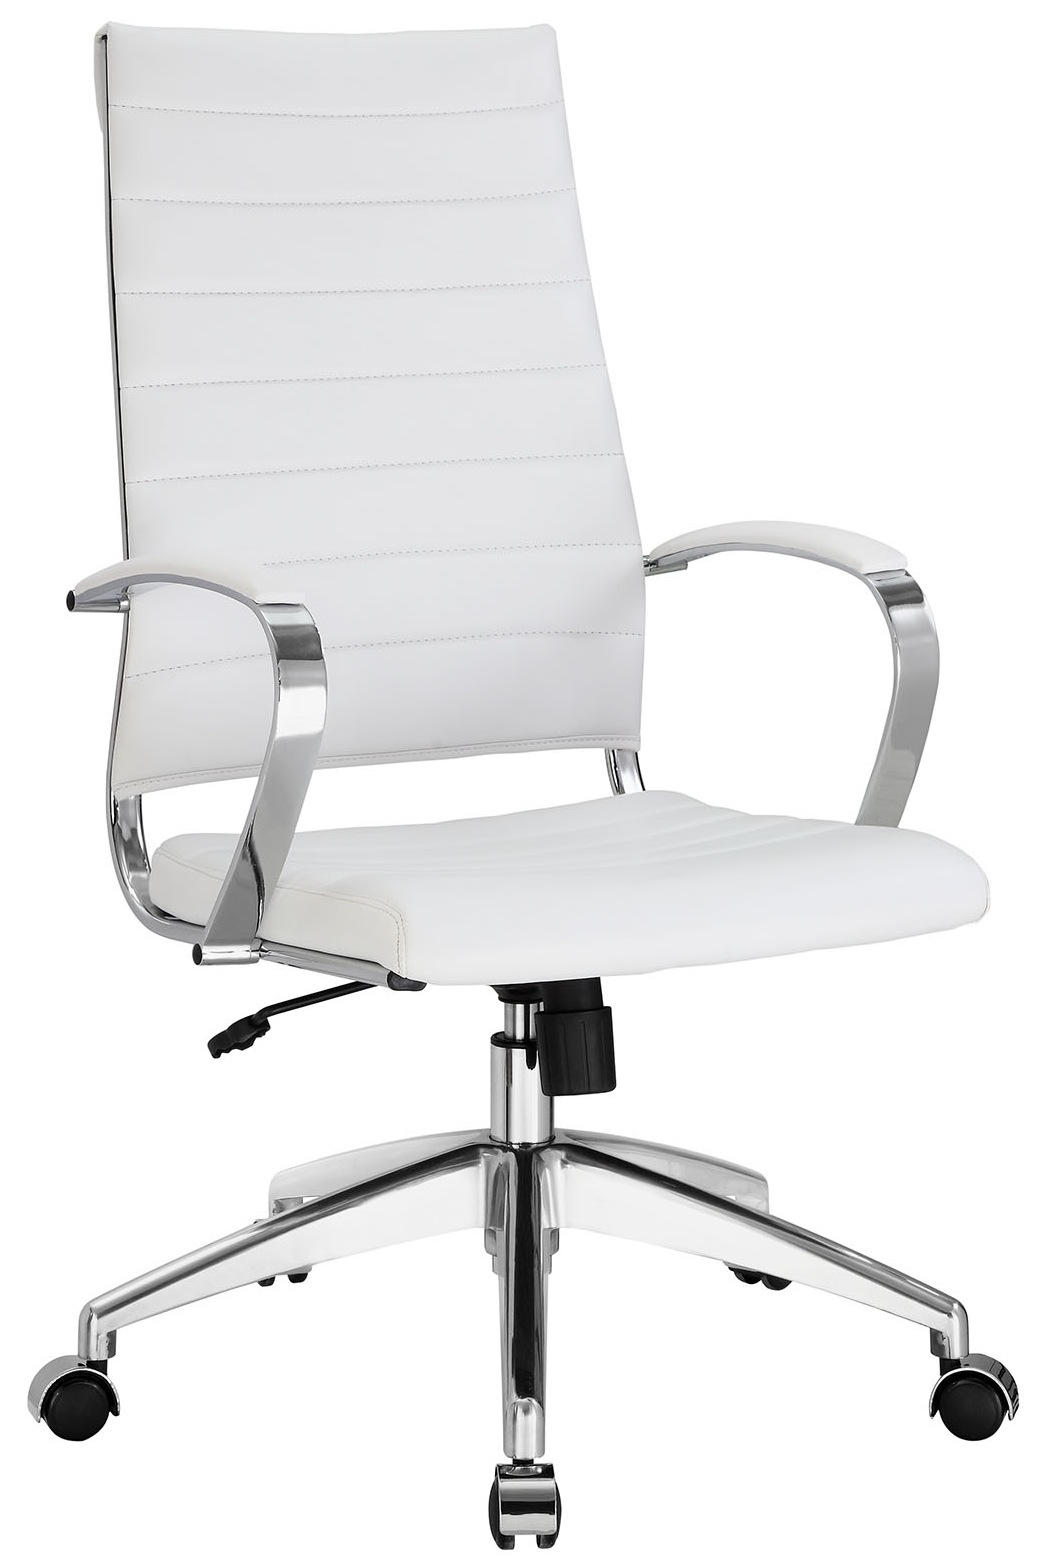 Black and white office chair - Aria Hb Office Chair White Jpg